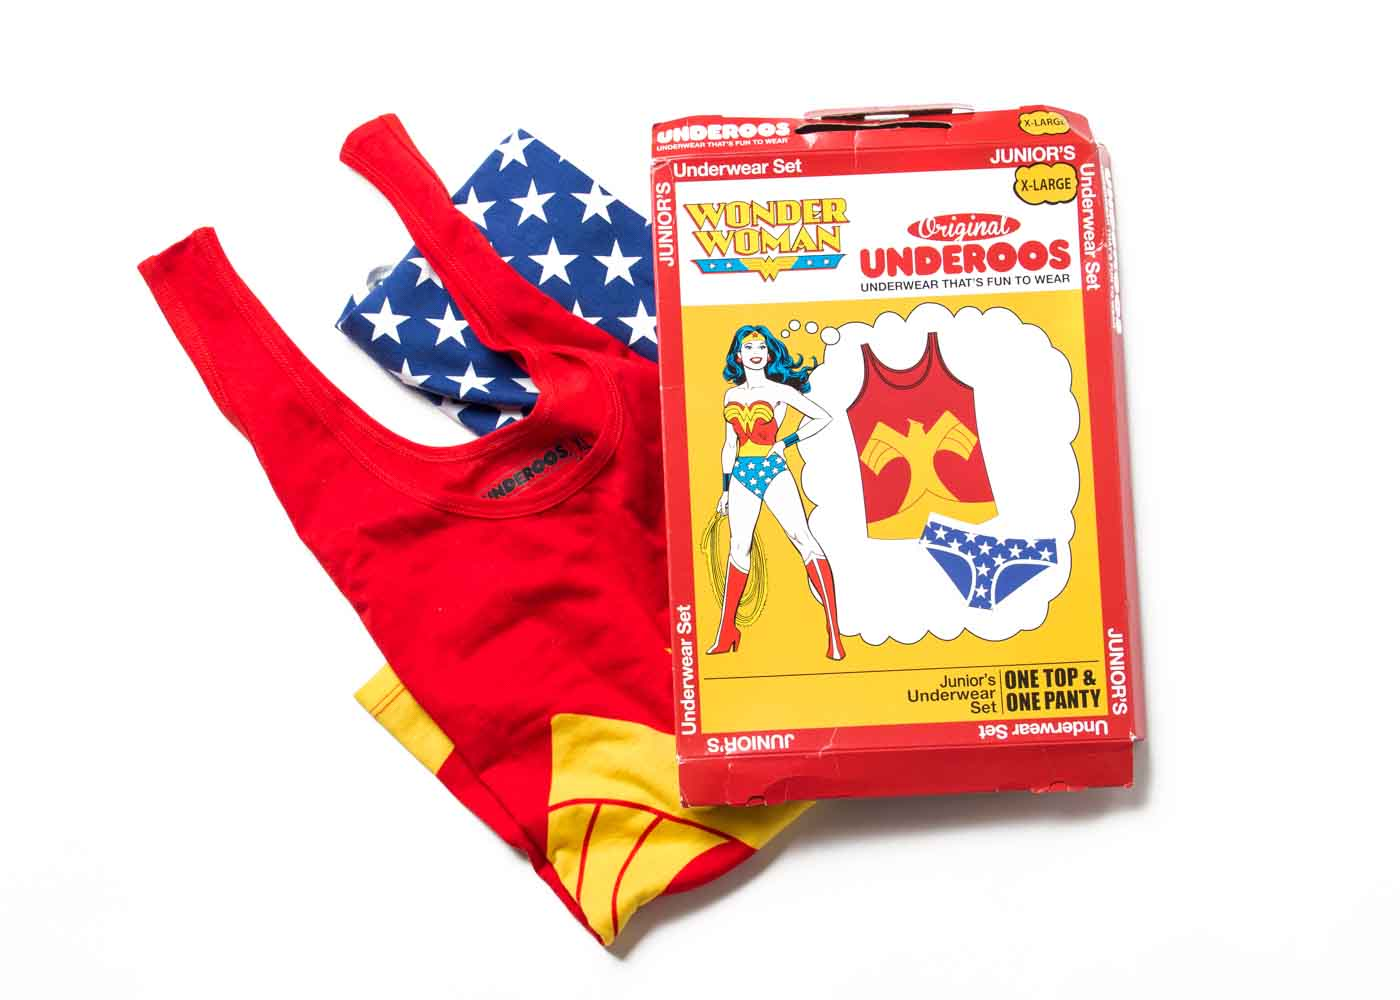 Underoos for adults - they're a thing - the perfect thing for the superhero in your life!